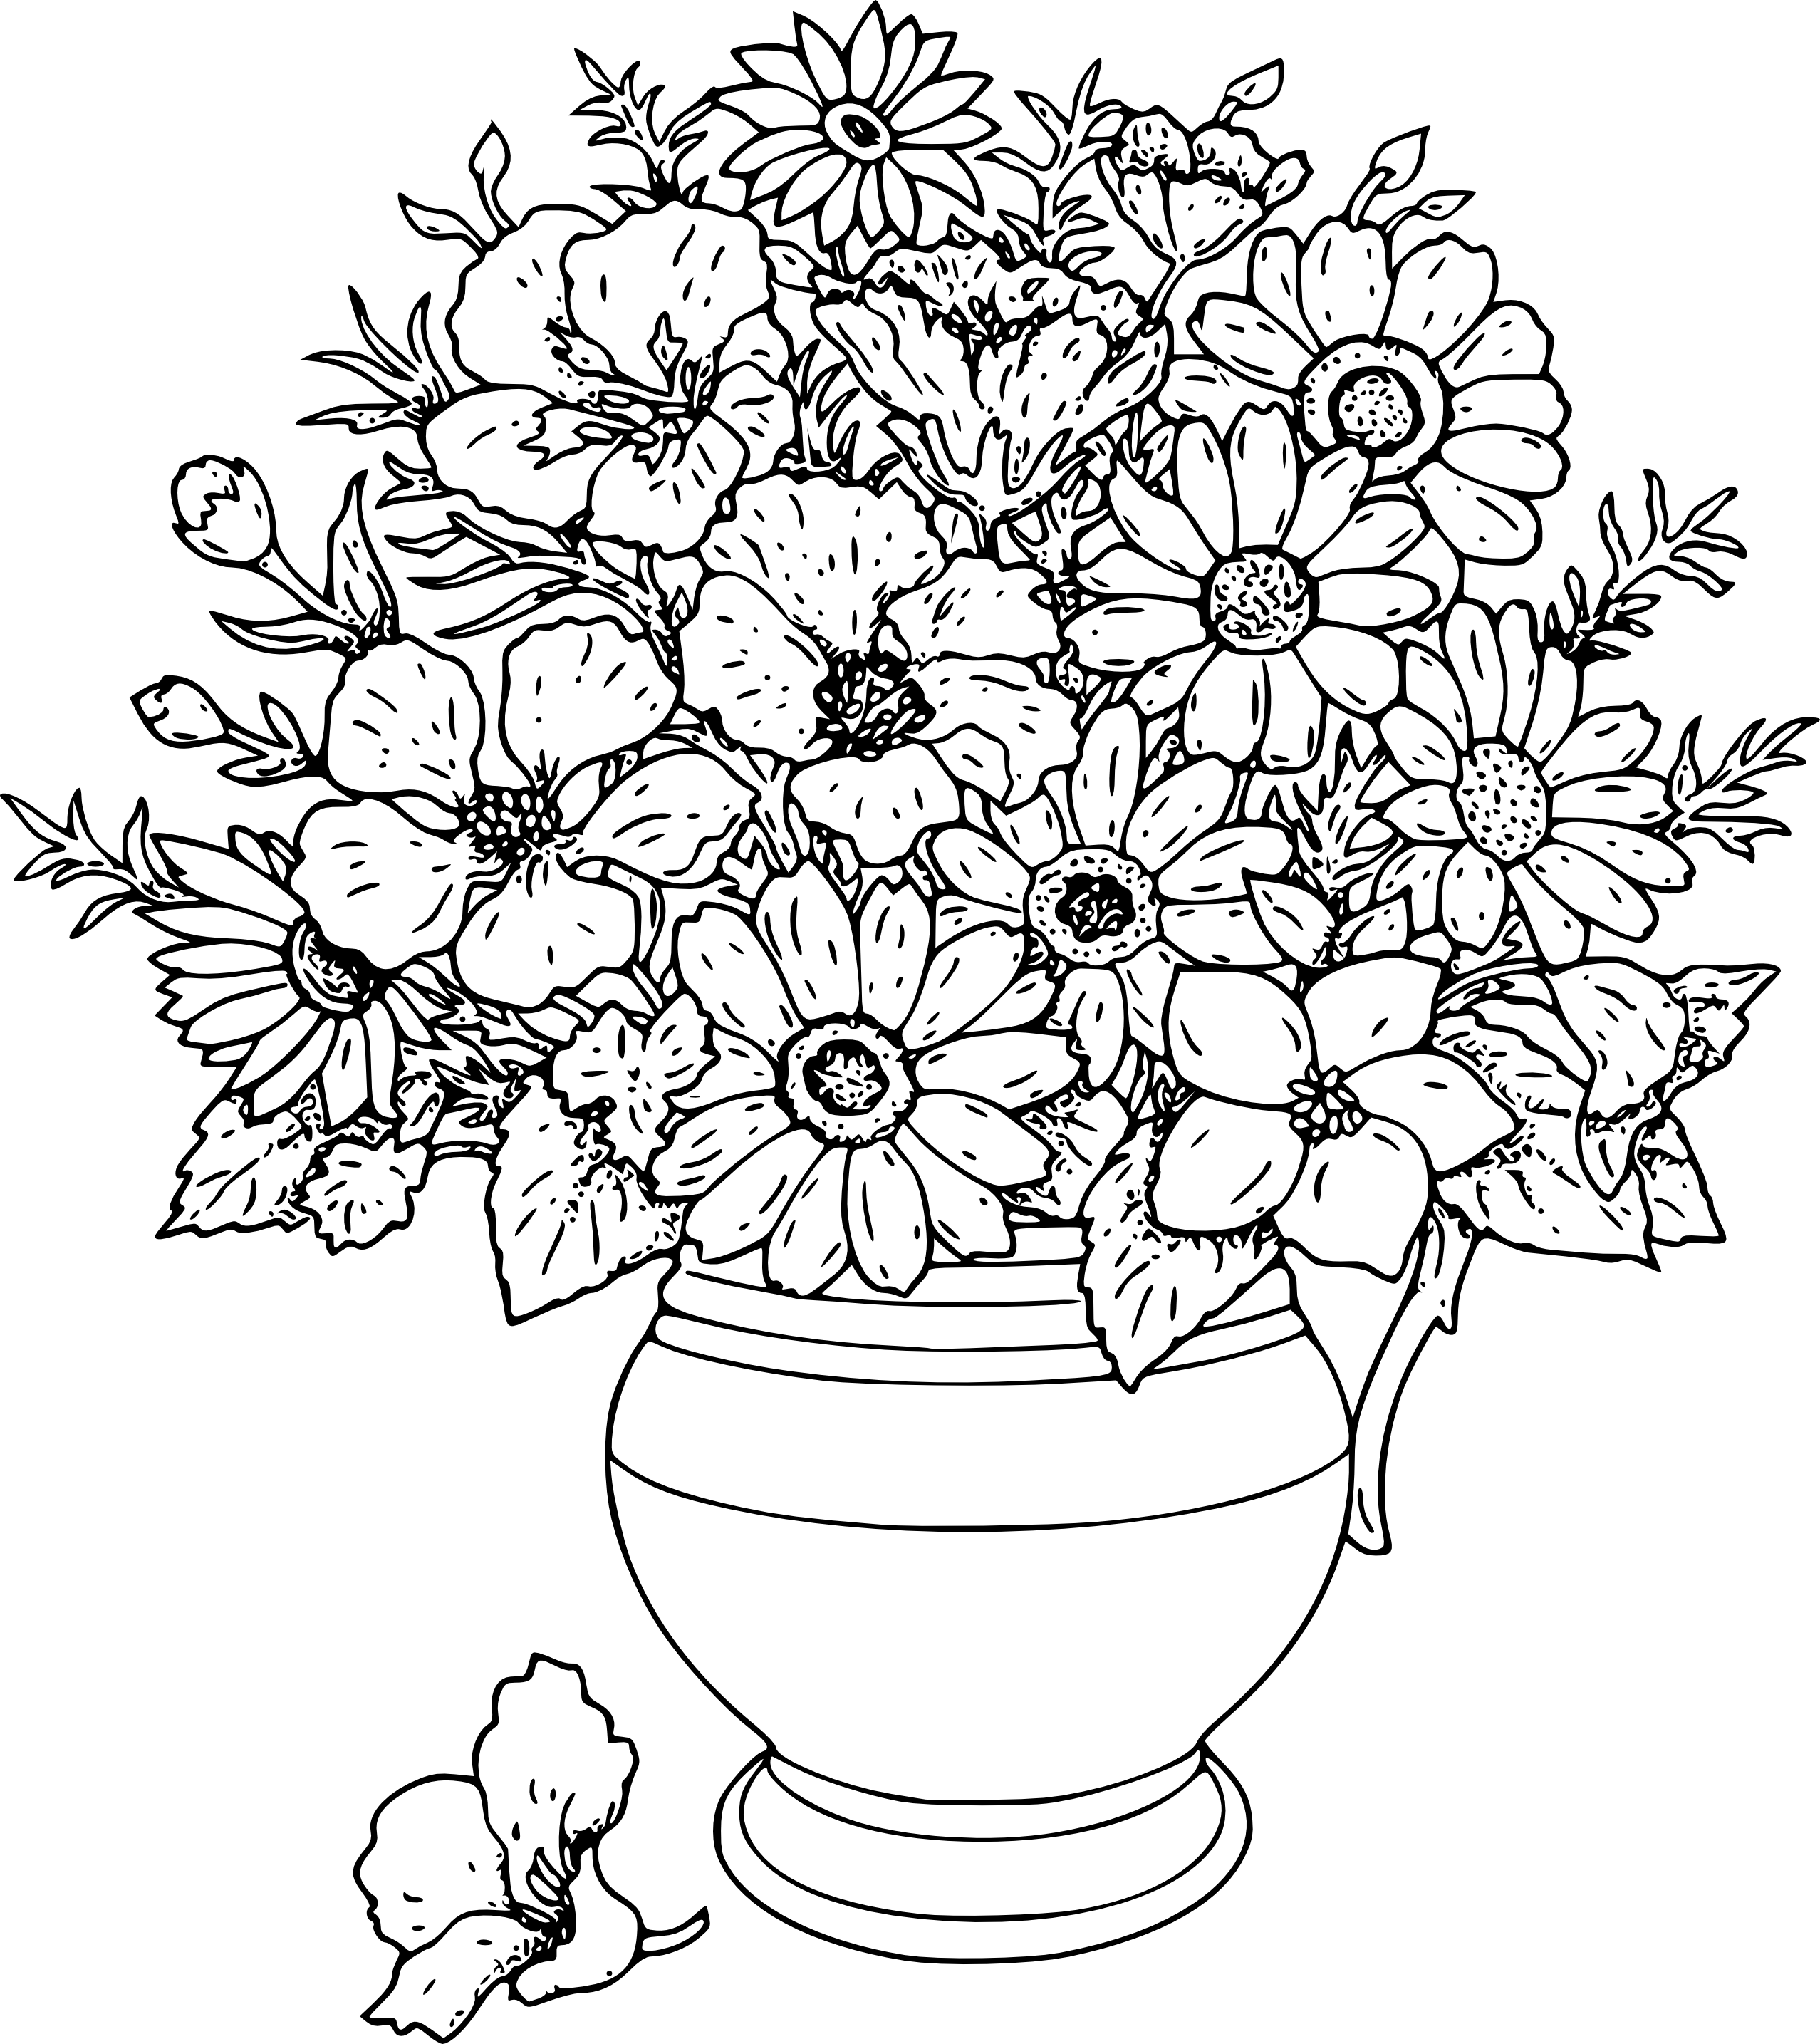 Flower Bouquet Line Drawing : Flowers line drawing images clipart best floral and